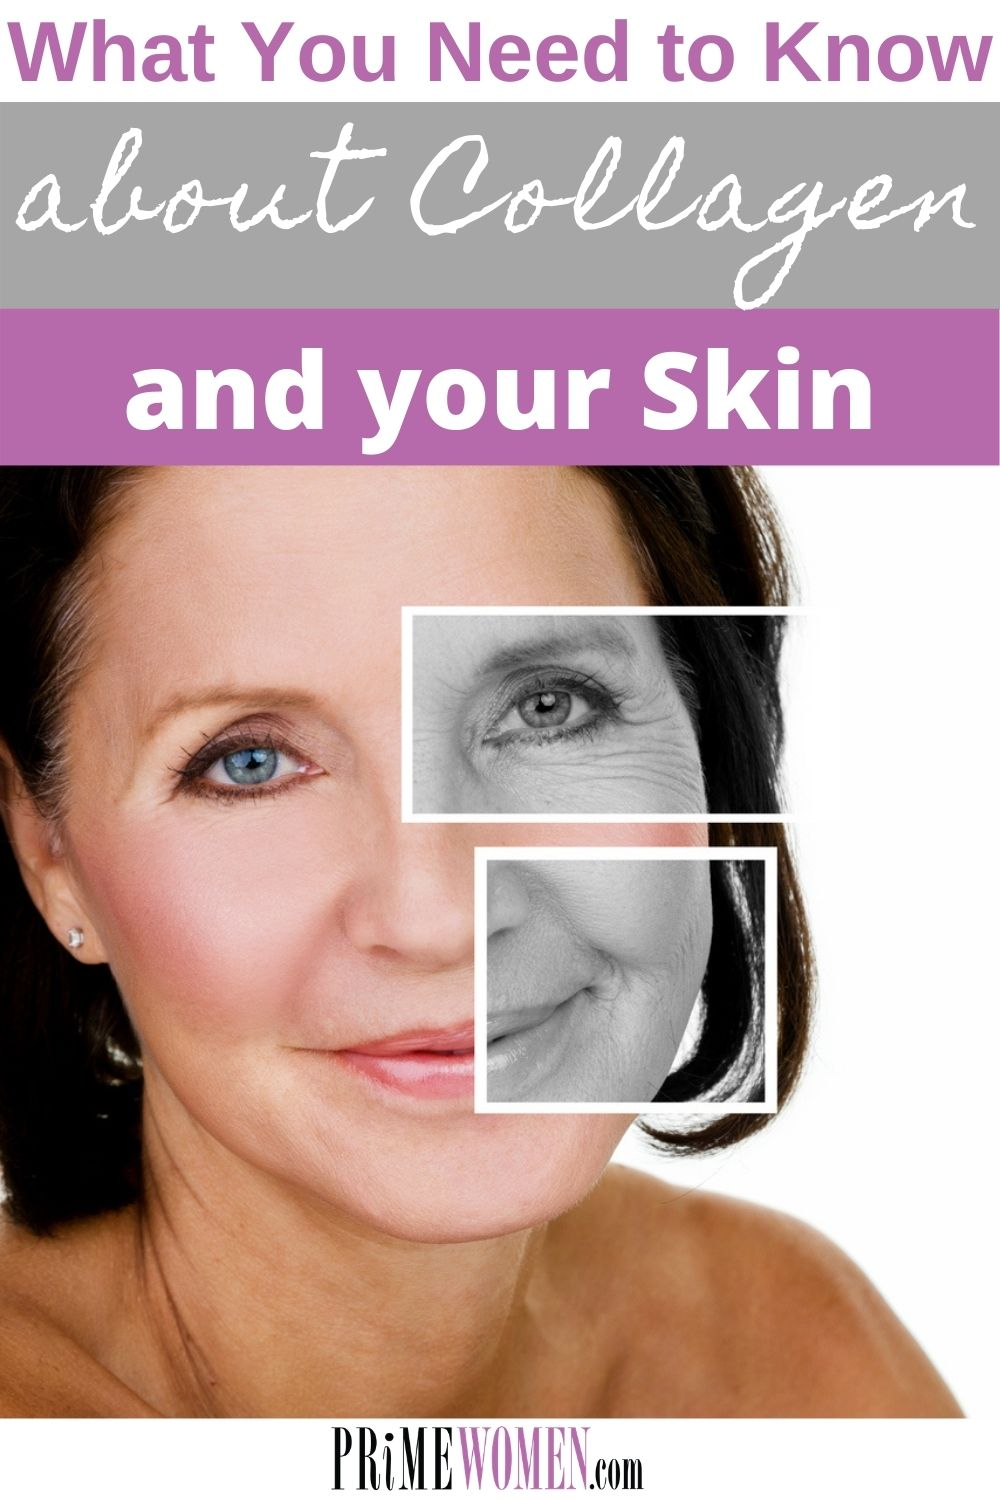 What you need to know about collagen and your skin